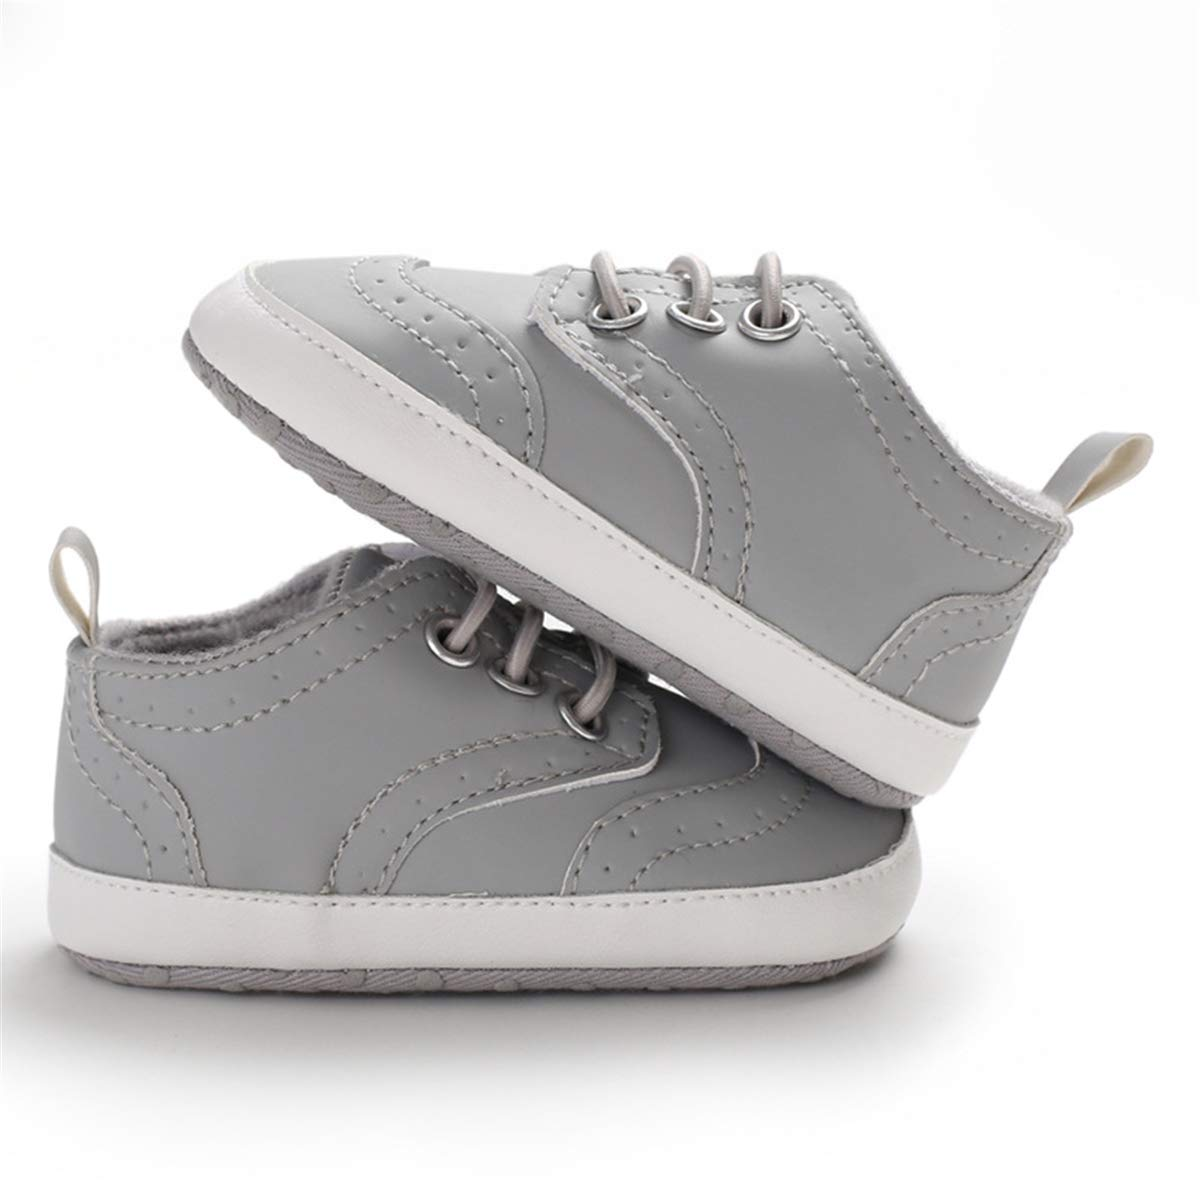 Baby Boys Girls Shoes Soft Sole PU Leather Moccasins Lace-Up Sneaker Infant Toddler First Walkers Crib Outdoor Dress Shoes